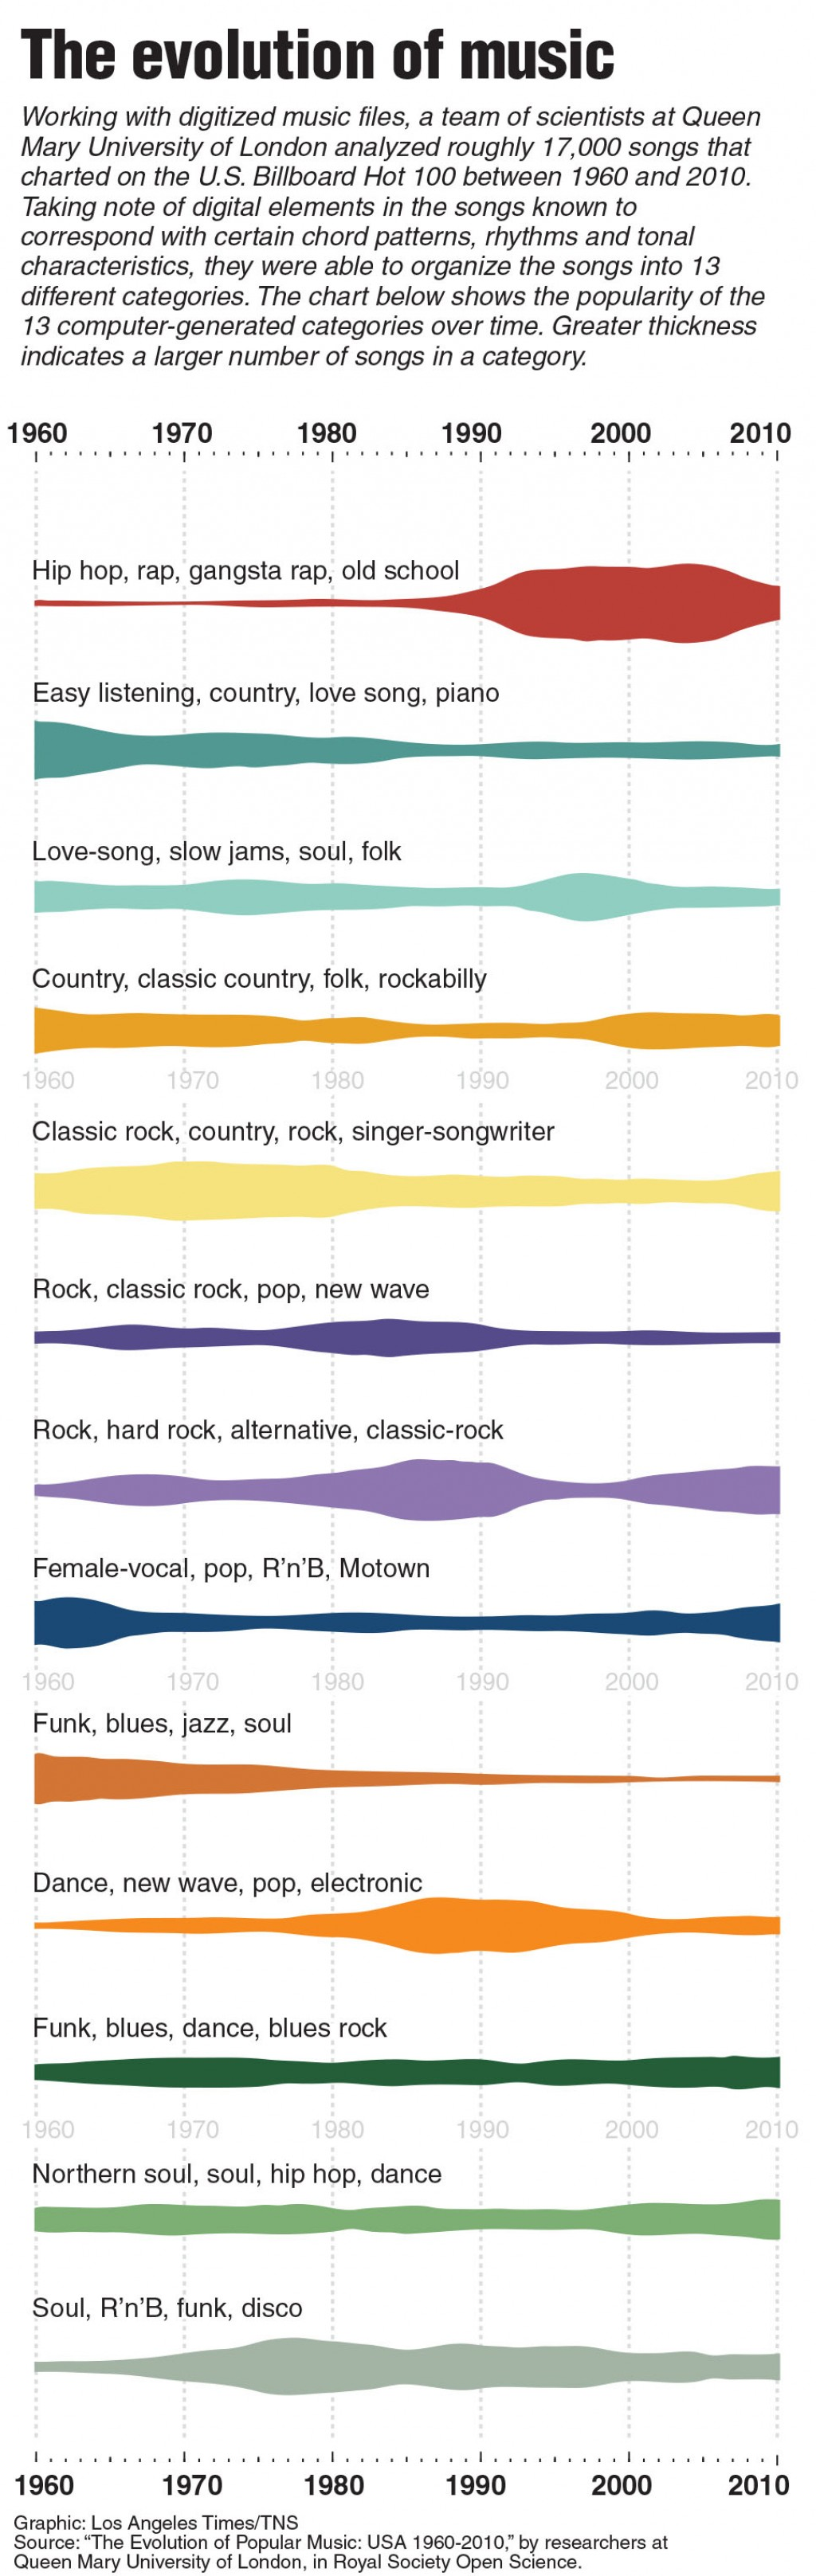 Music genres impact listeners throughout history